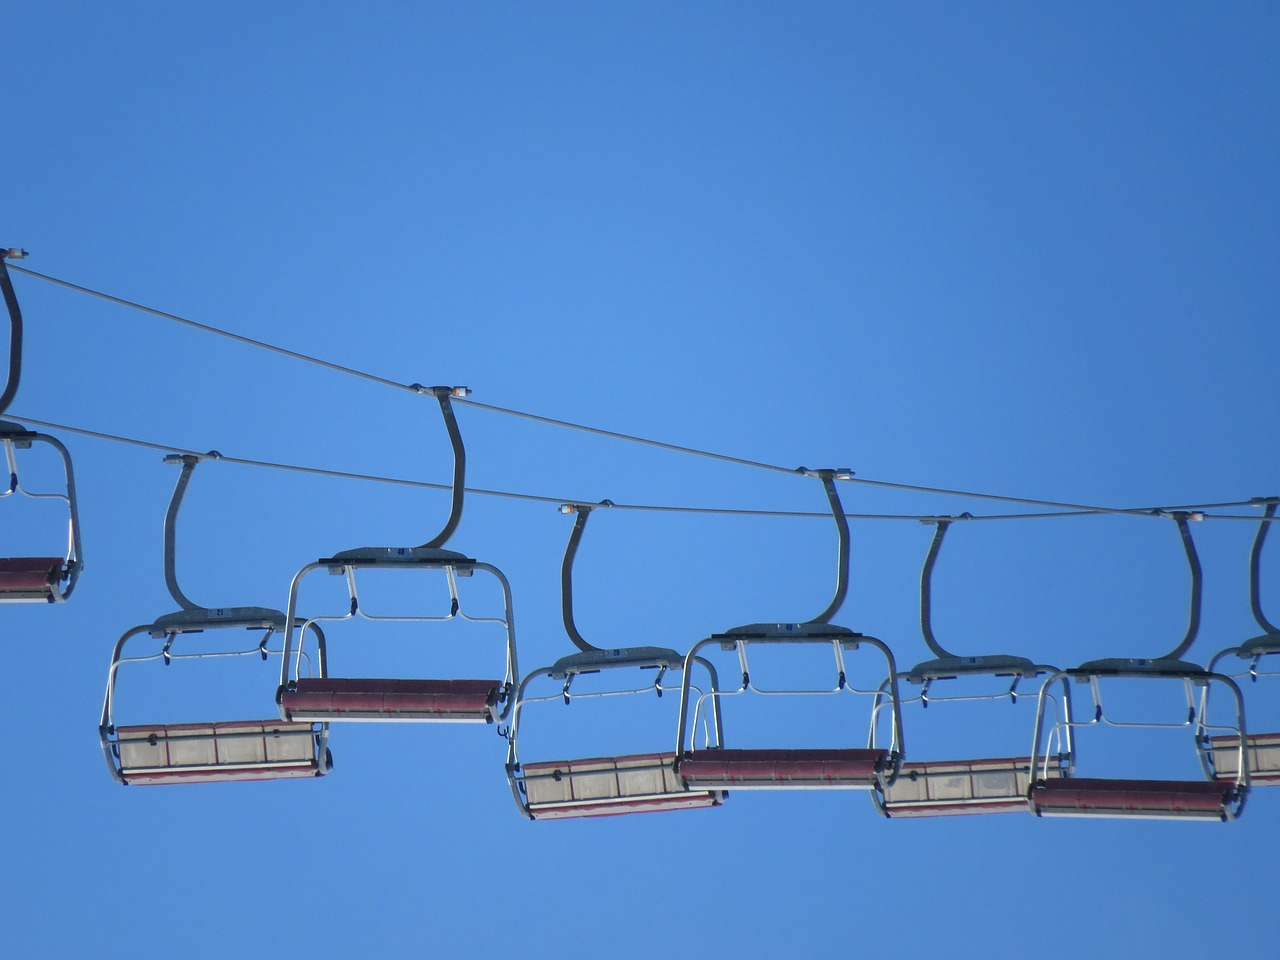 lift ski lift chairlift free photo